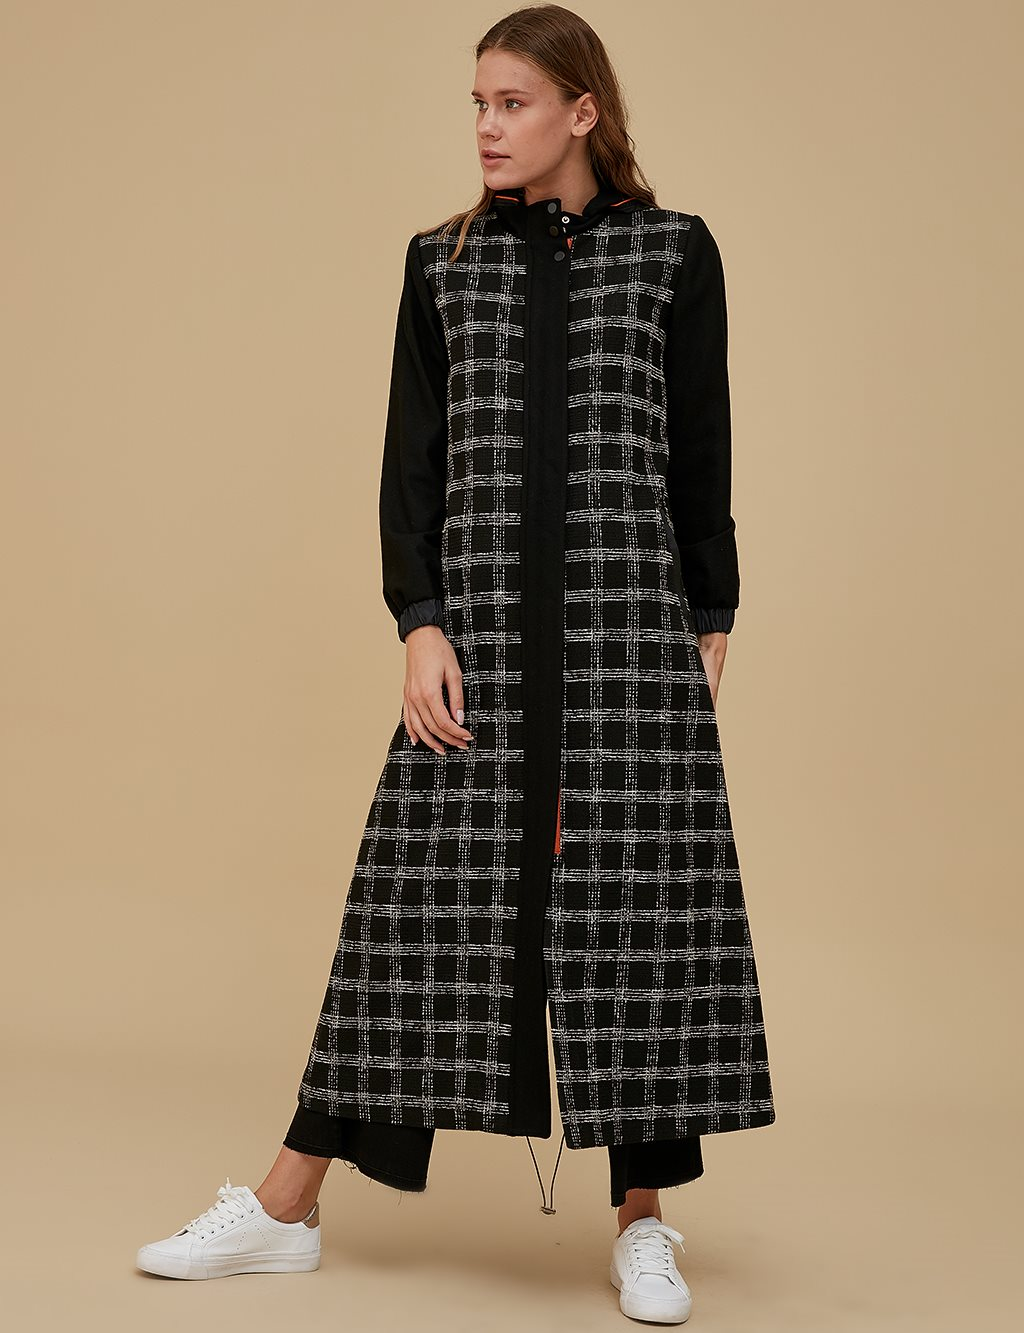 Detailed Coat A9 18007 Black